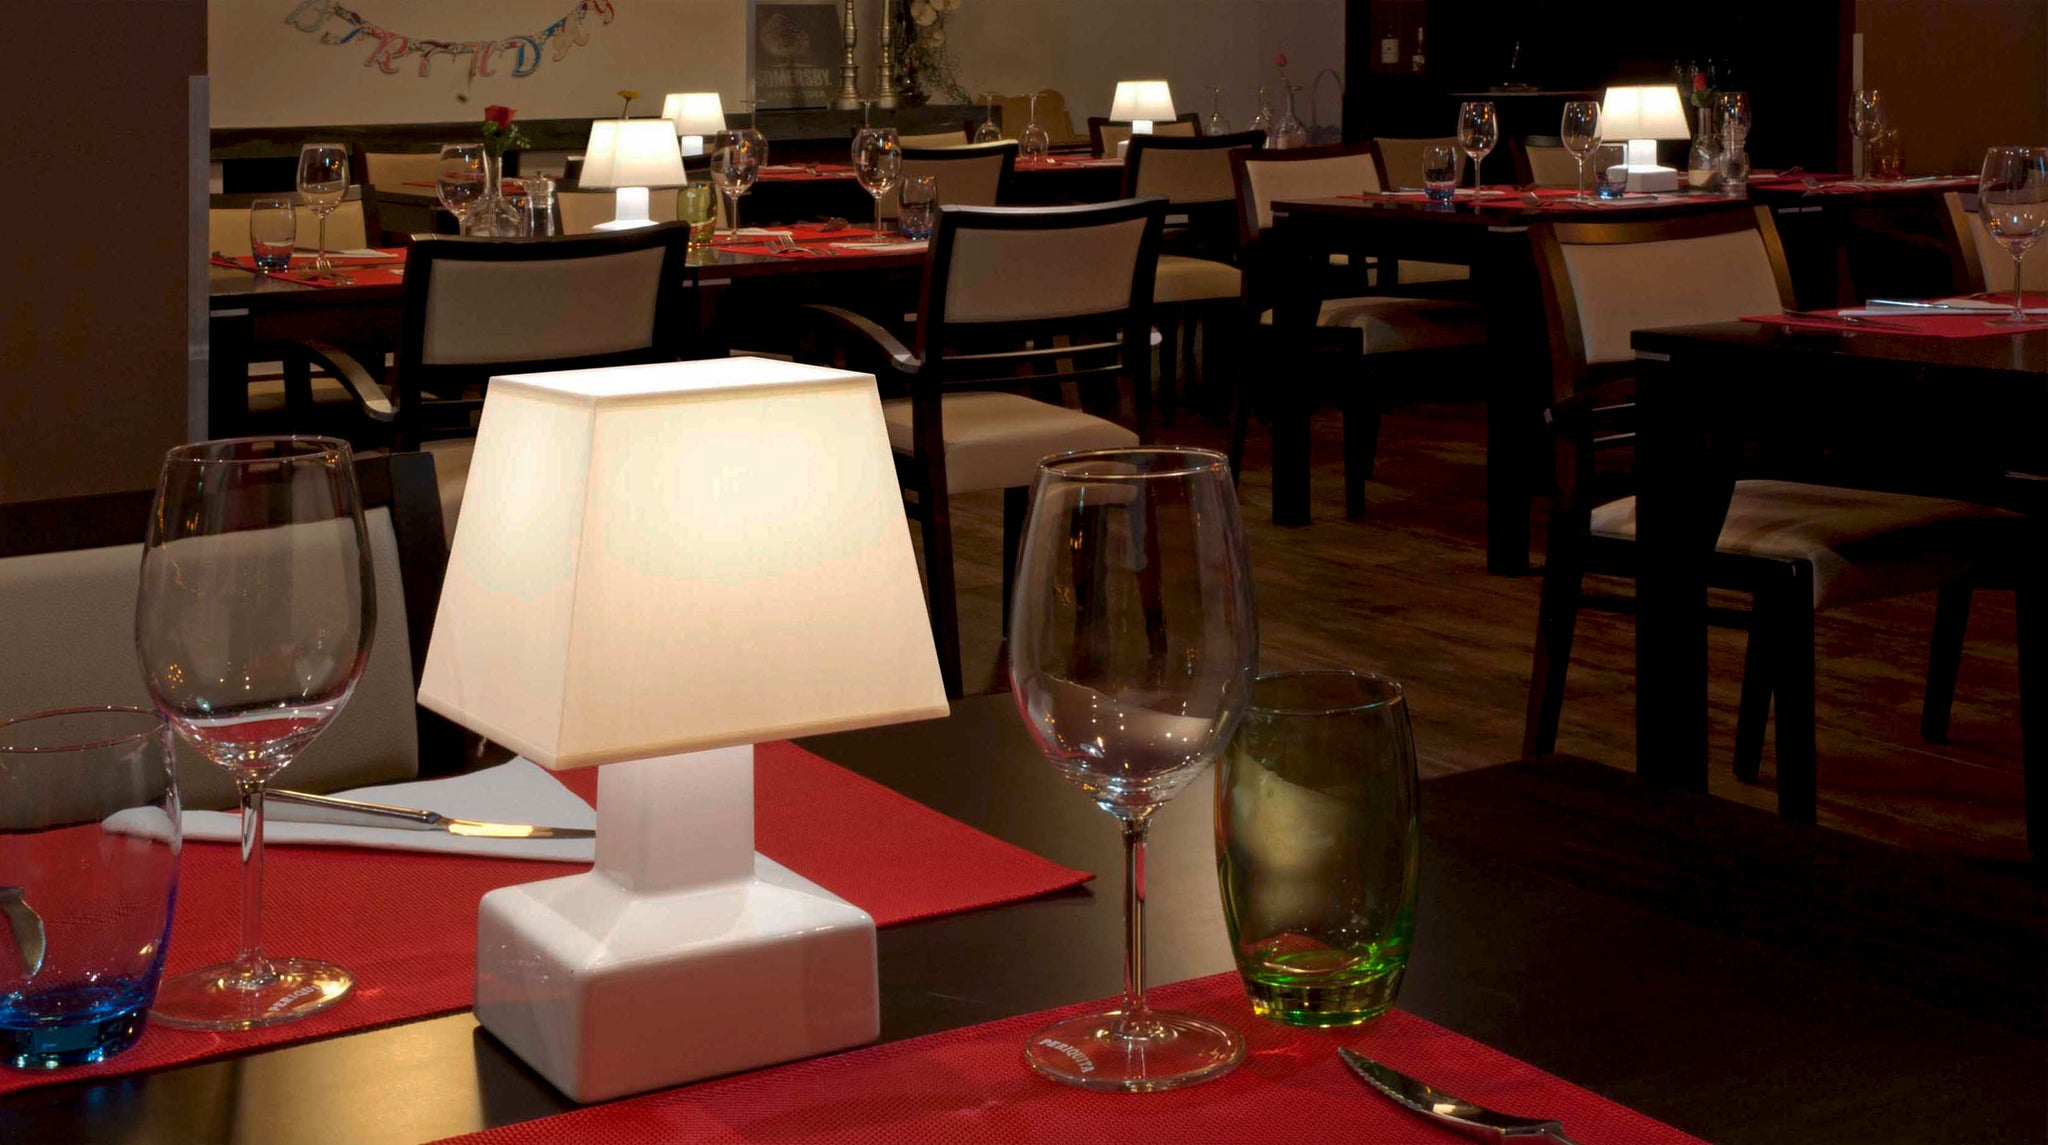 Compact Cordless Lamp in restaurant setting